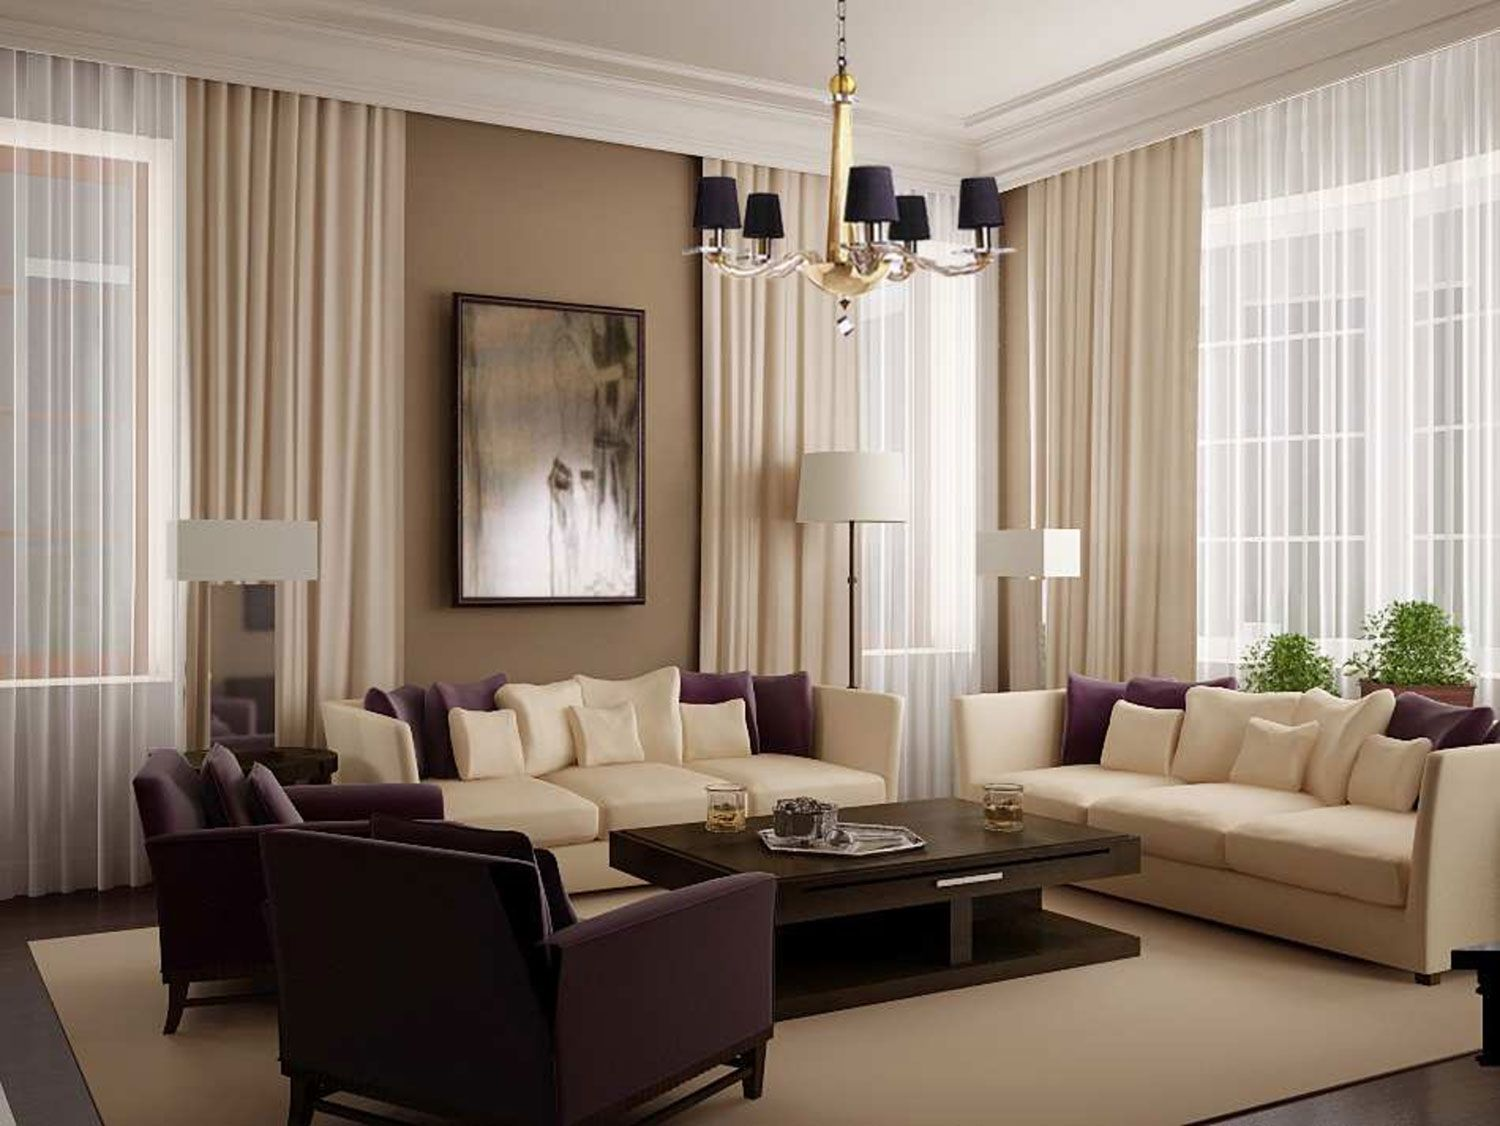 Amusing Living Room Sets For Black Chandelier With Two Cream